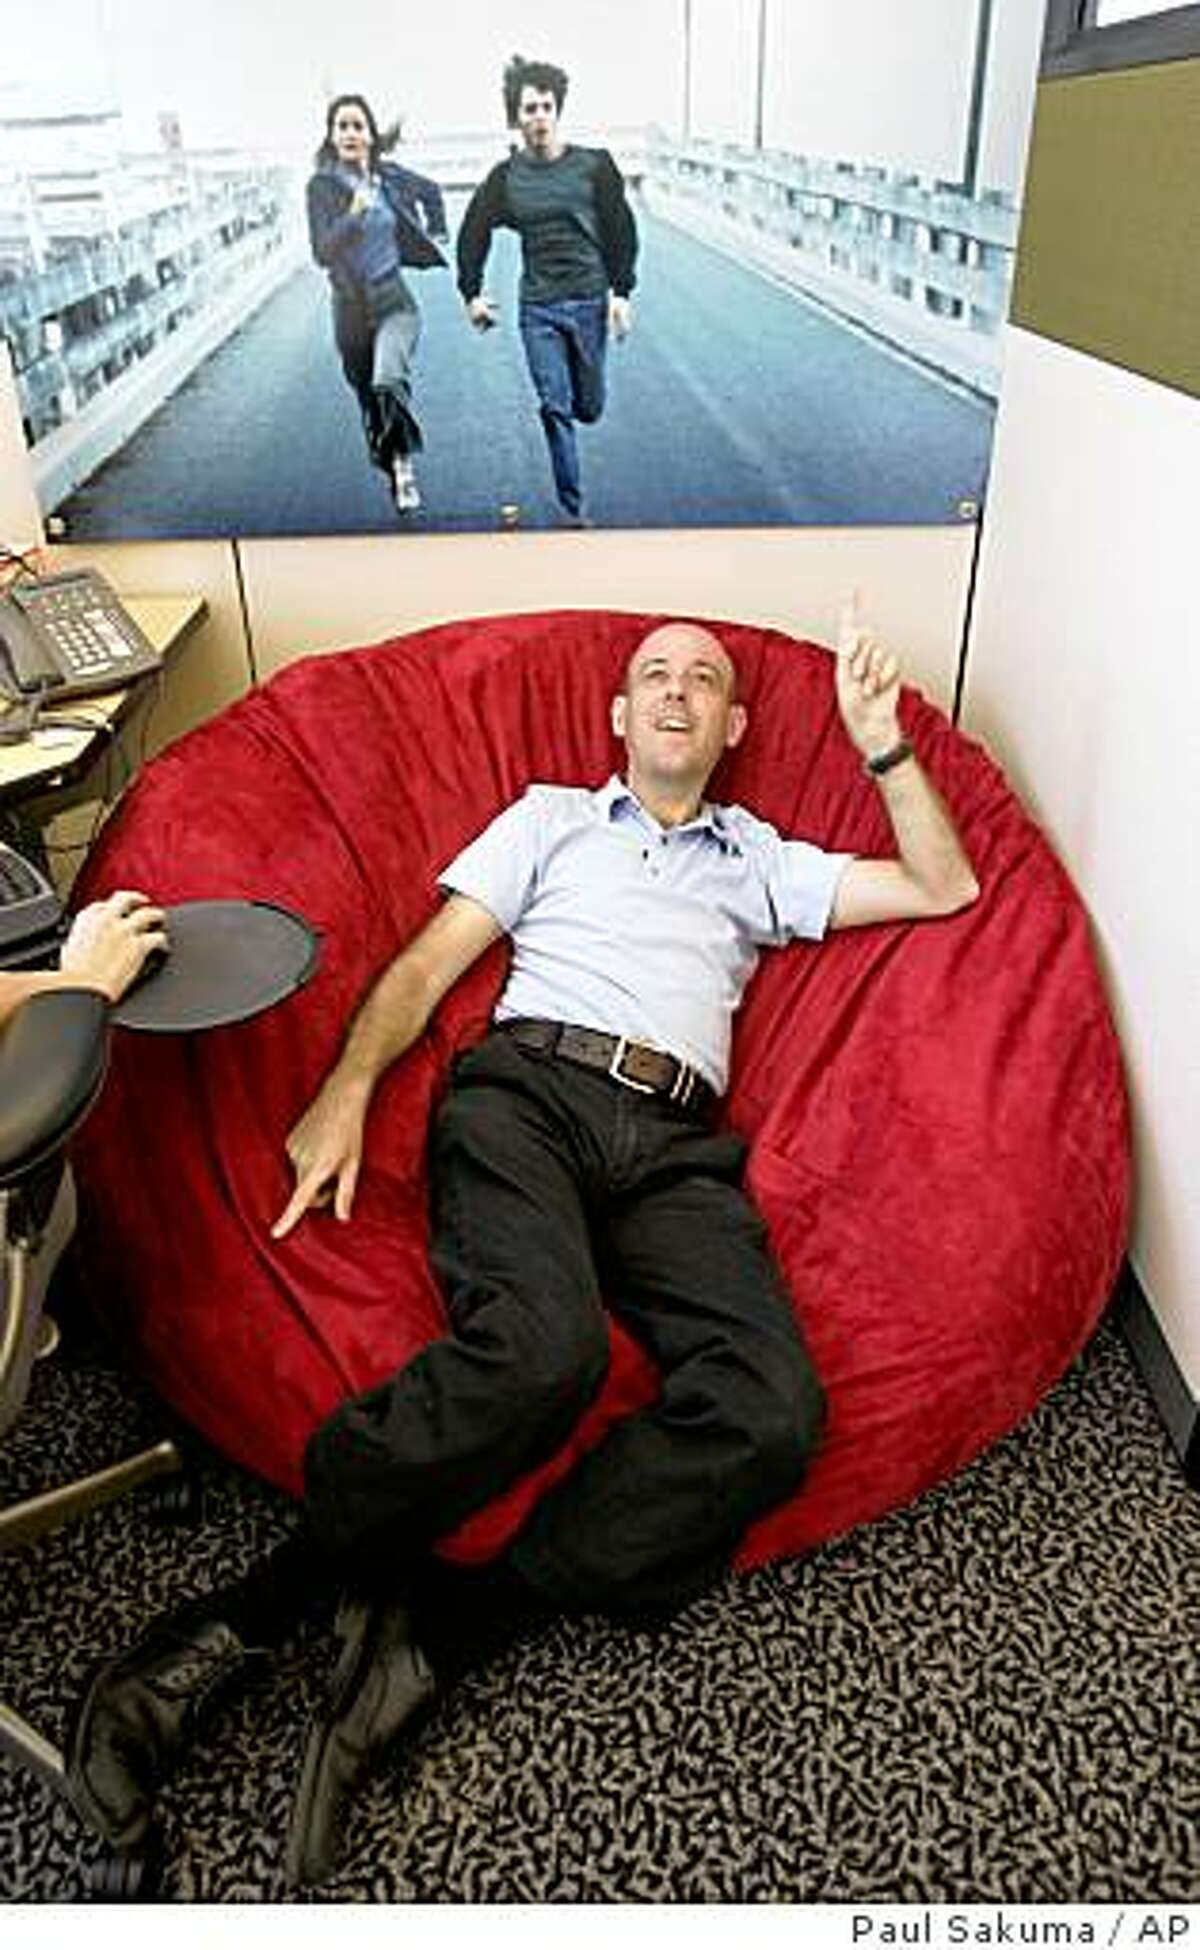 ** FOR RELEASE WEEKEND SEPTEMBER 6-7 ** Google Technology Director Craig Silverstein, who was Google's first employee, sits on his beanbag chair in his office at Google headquarters in Mountain View, Calif., Wednesday, Aug. 27, 2008. When Larry Page and Sergey Brin founded Google Inc. on Sept. 7, 1998, they had little more than their ingenuity, four computers and an investor's $100,000 bet on their belief that an Internet search engine could change the world. (AP Photo/Paul Sakuma)